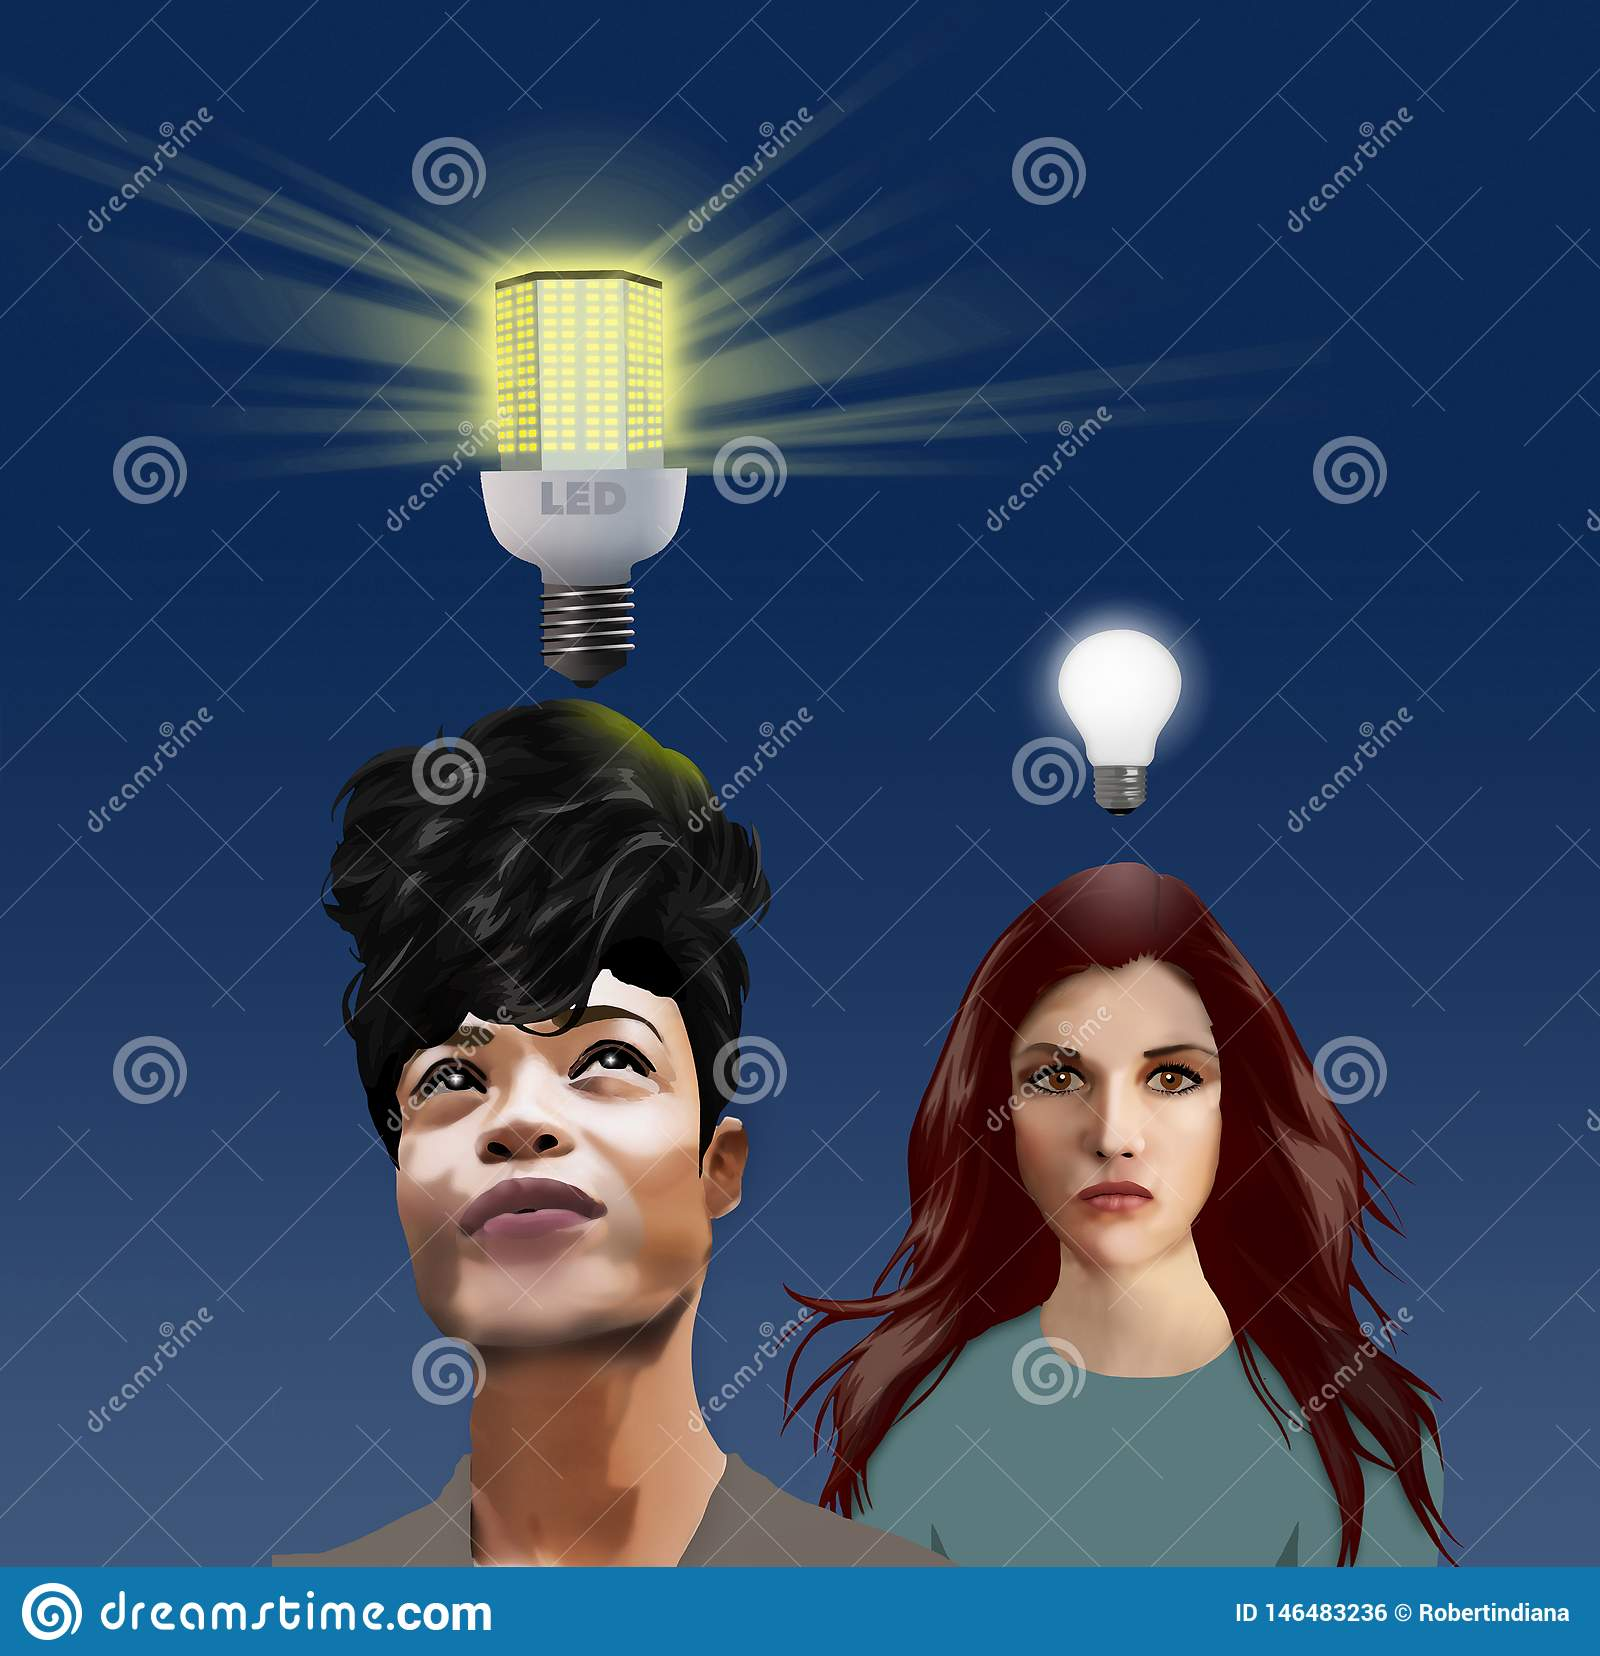 New Ideas--A modern LED light bulb shines brightly over the head of woman with a brilliant idea. The new bulb illustrates new